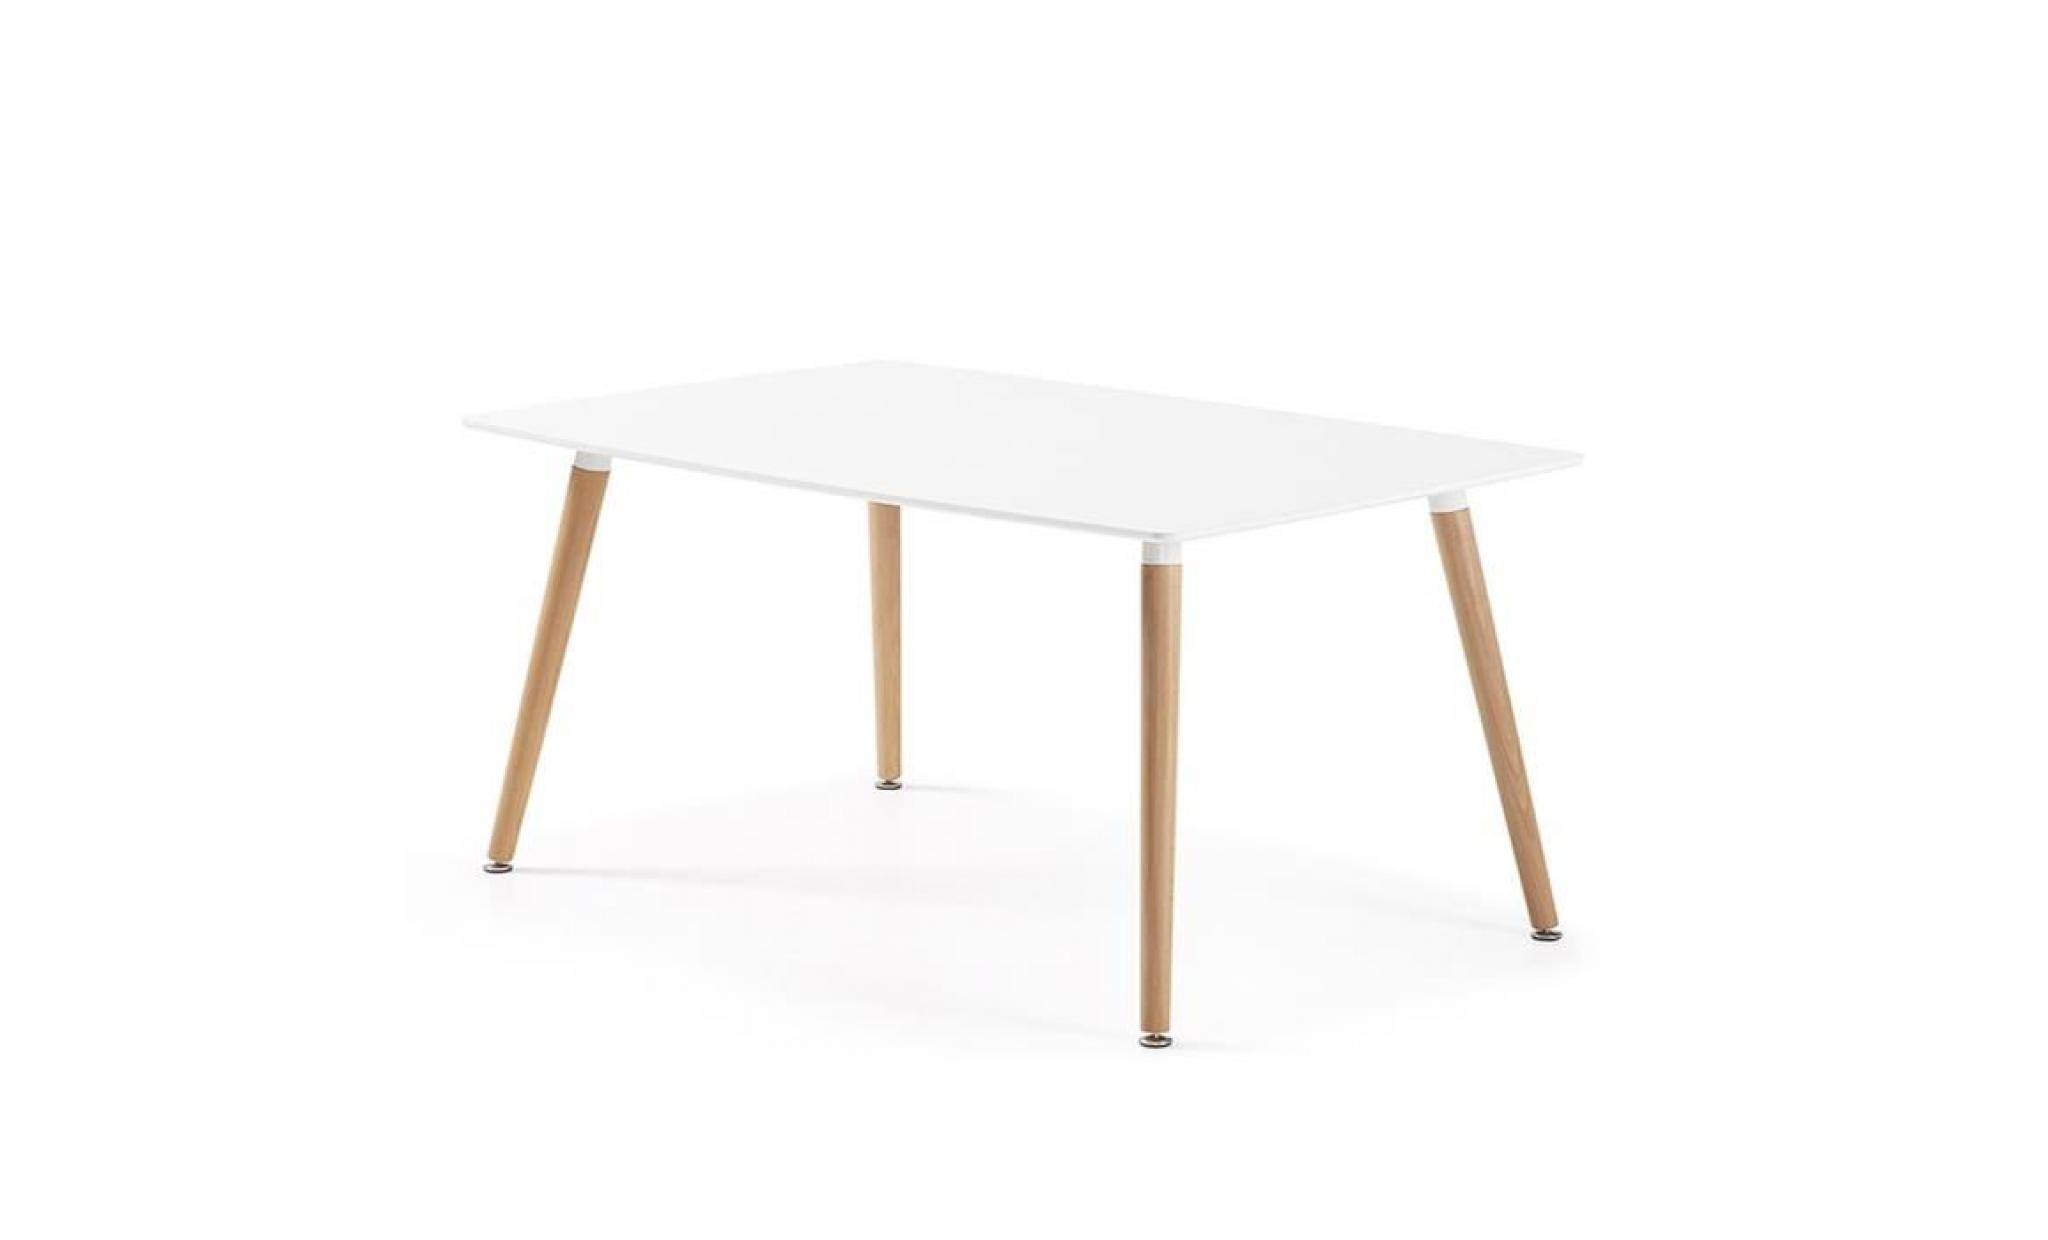 Table manger rectangulaire design blanche en bois laqu - Table en bois rectangulaire ...